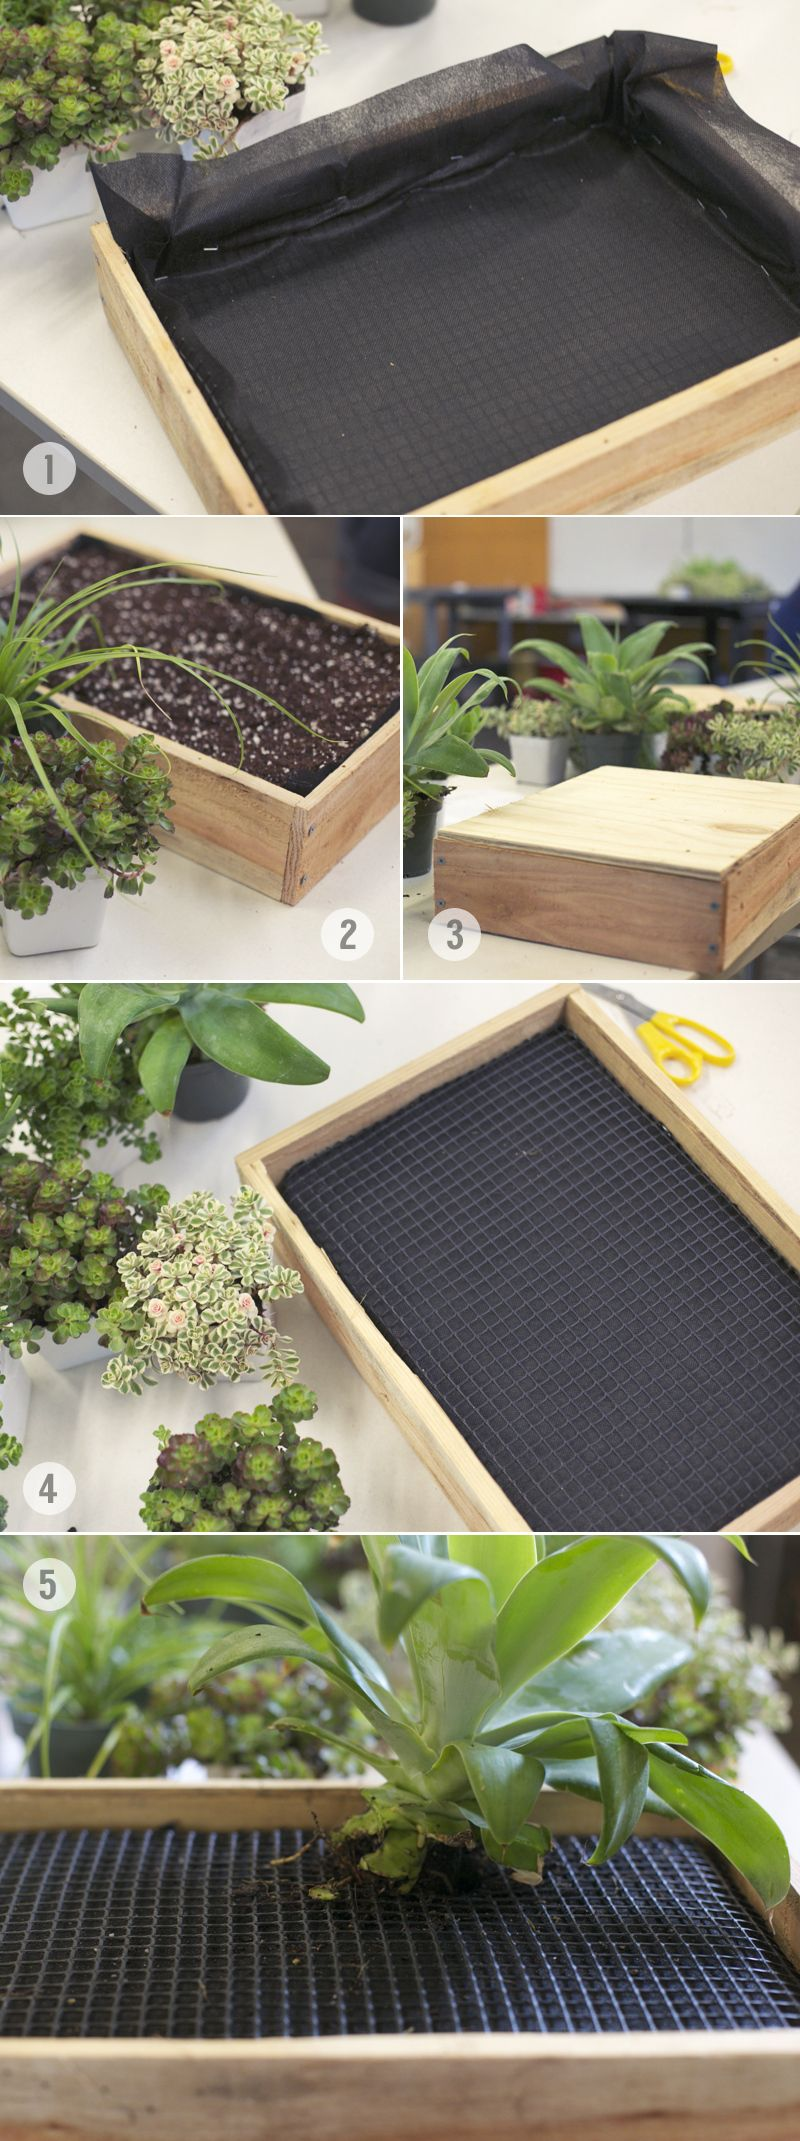 How to create a sturdy frame for